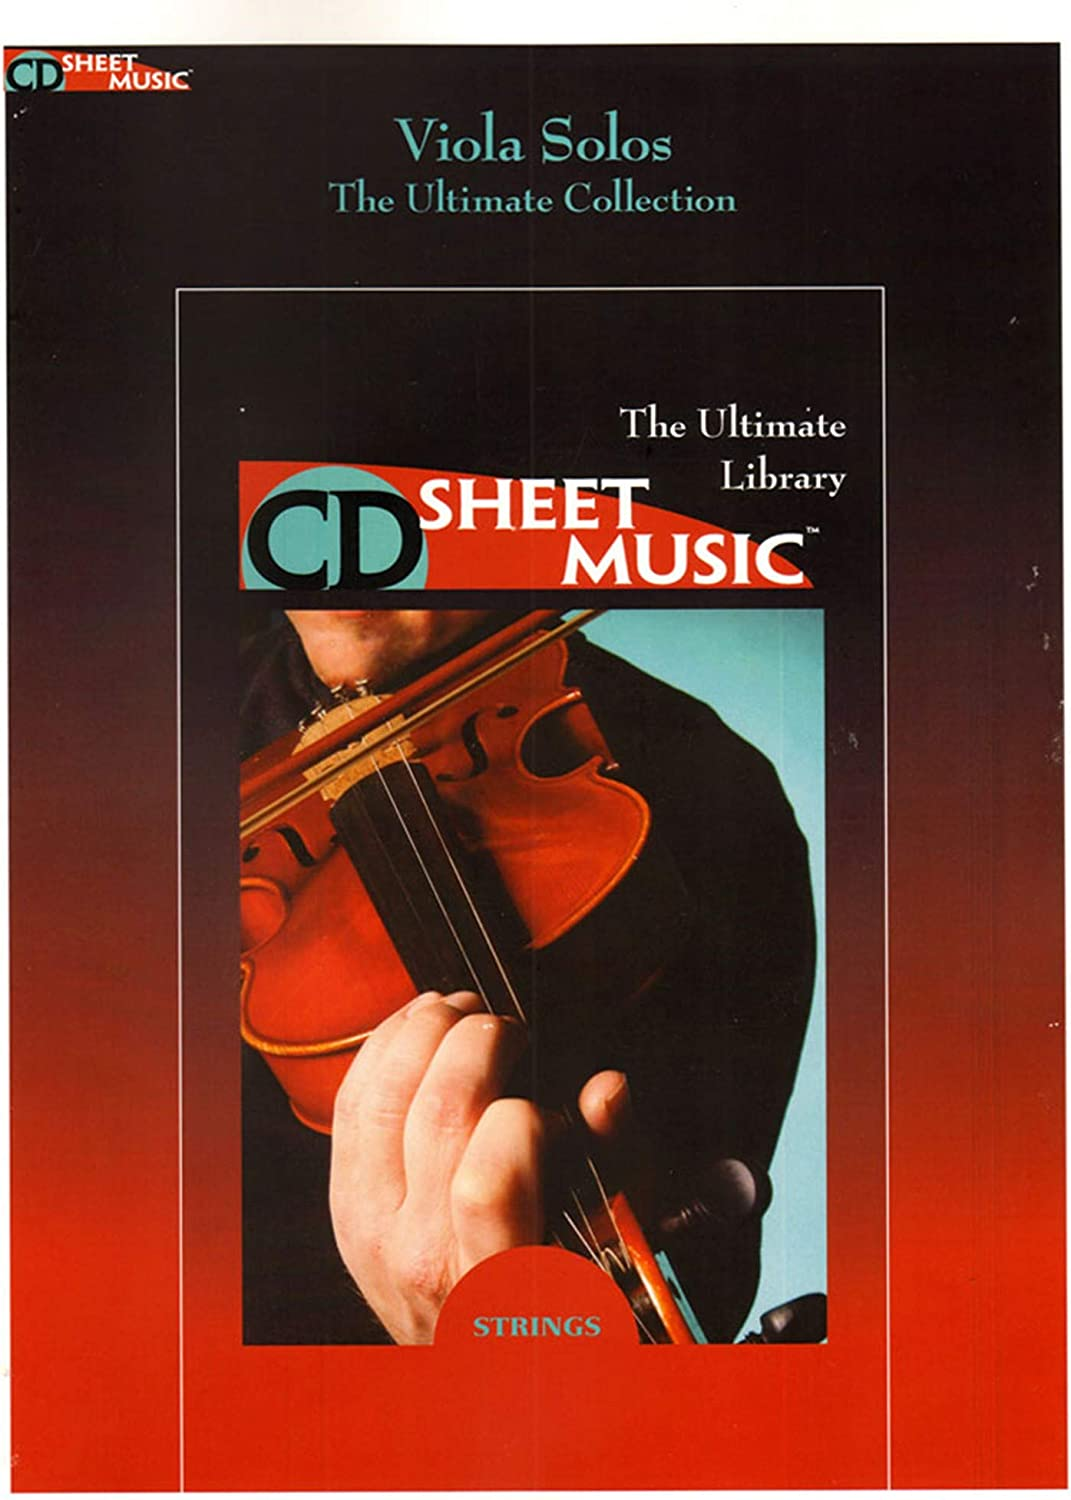 The Ultimate CD Sheet Music Library, Viola Solos, The Ultimate Collection